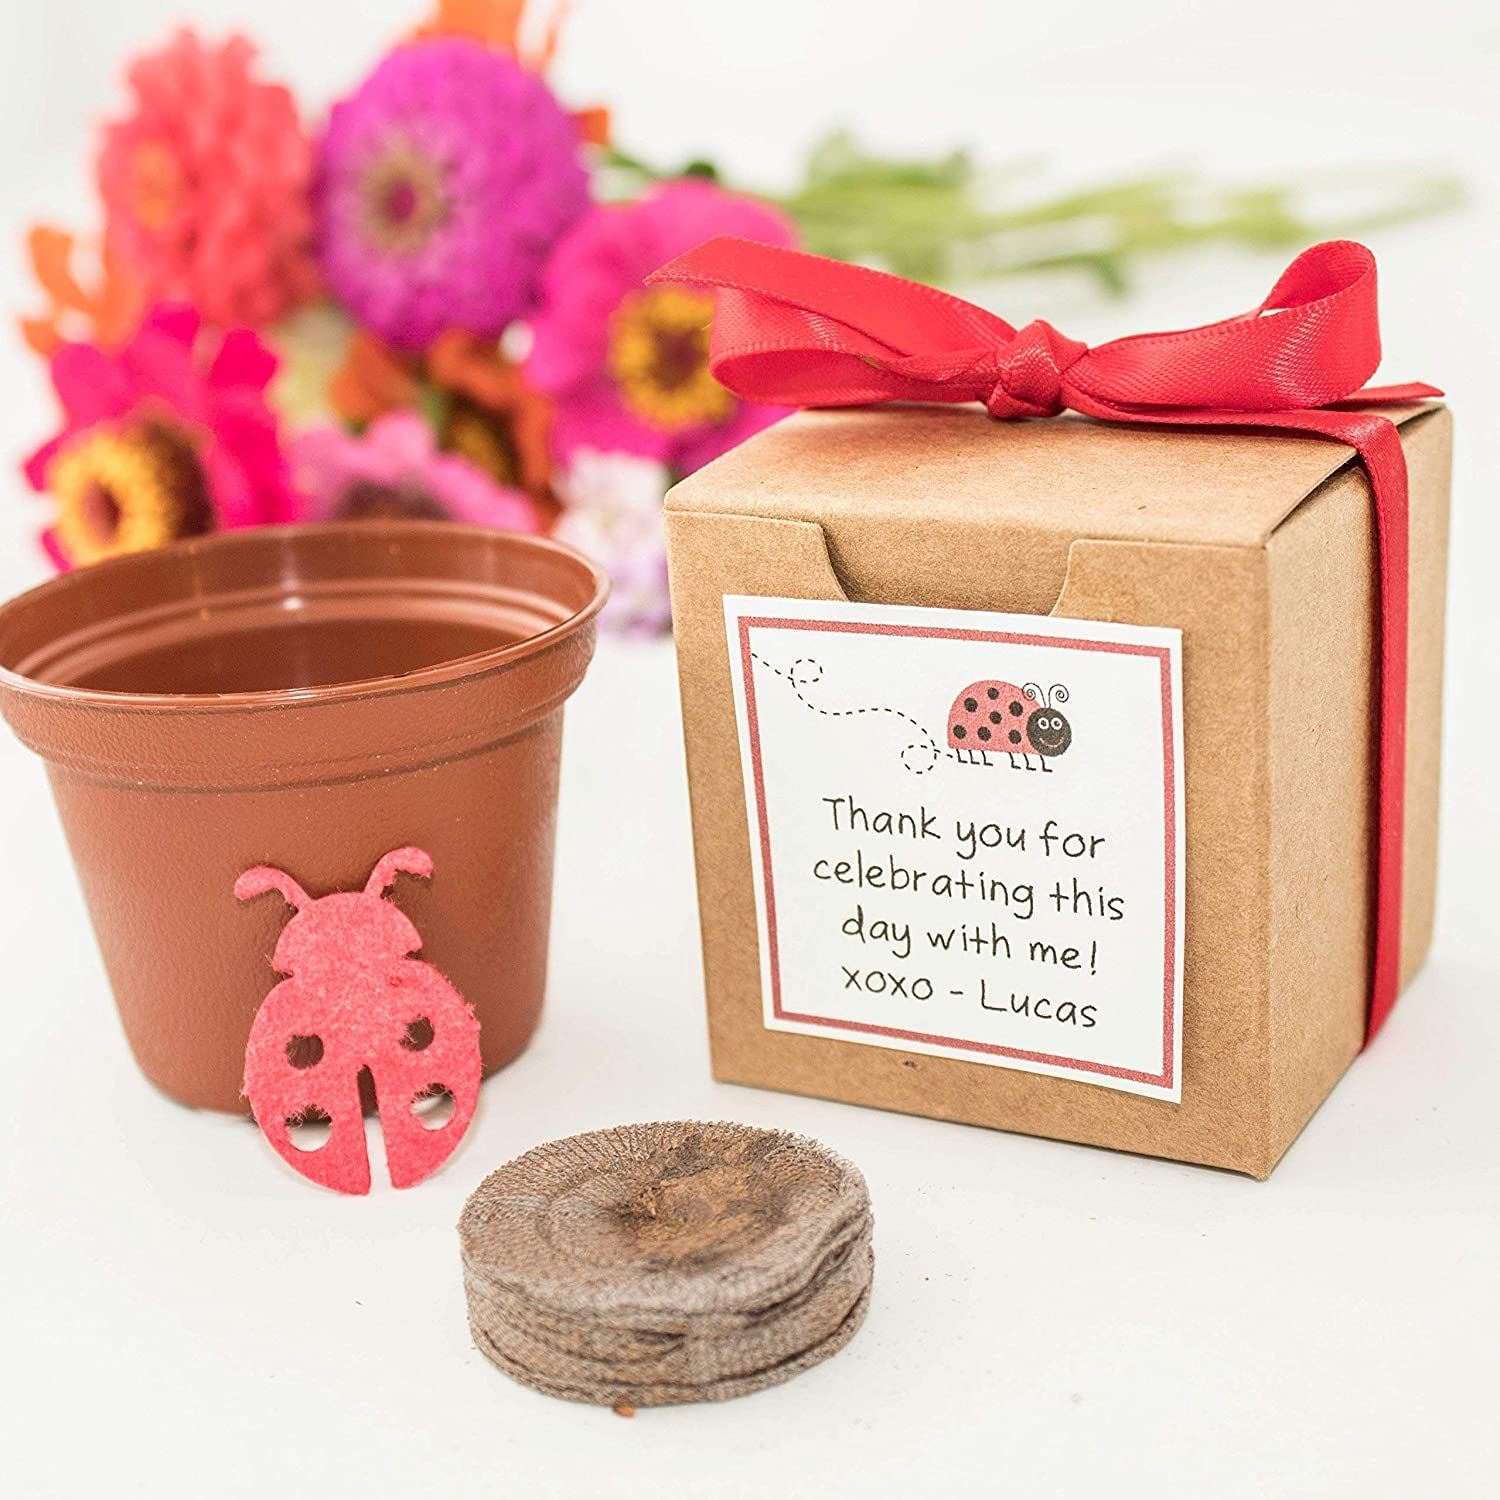 Plantable Lady Bug Garden Kit Personalized Birthday Party Favors Set Of 12